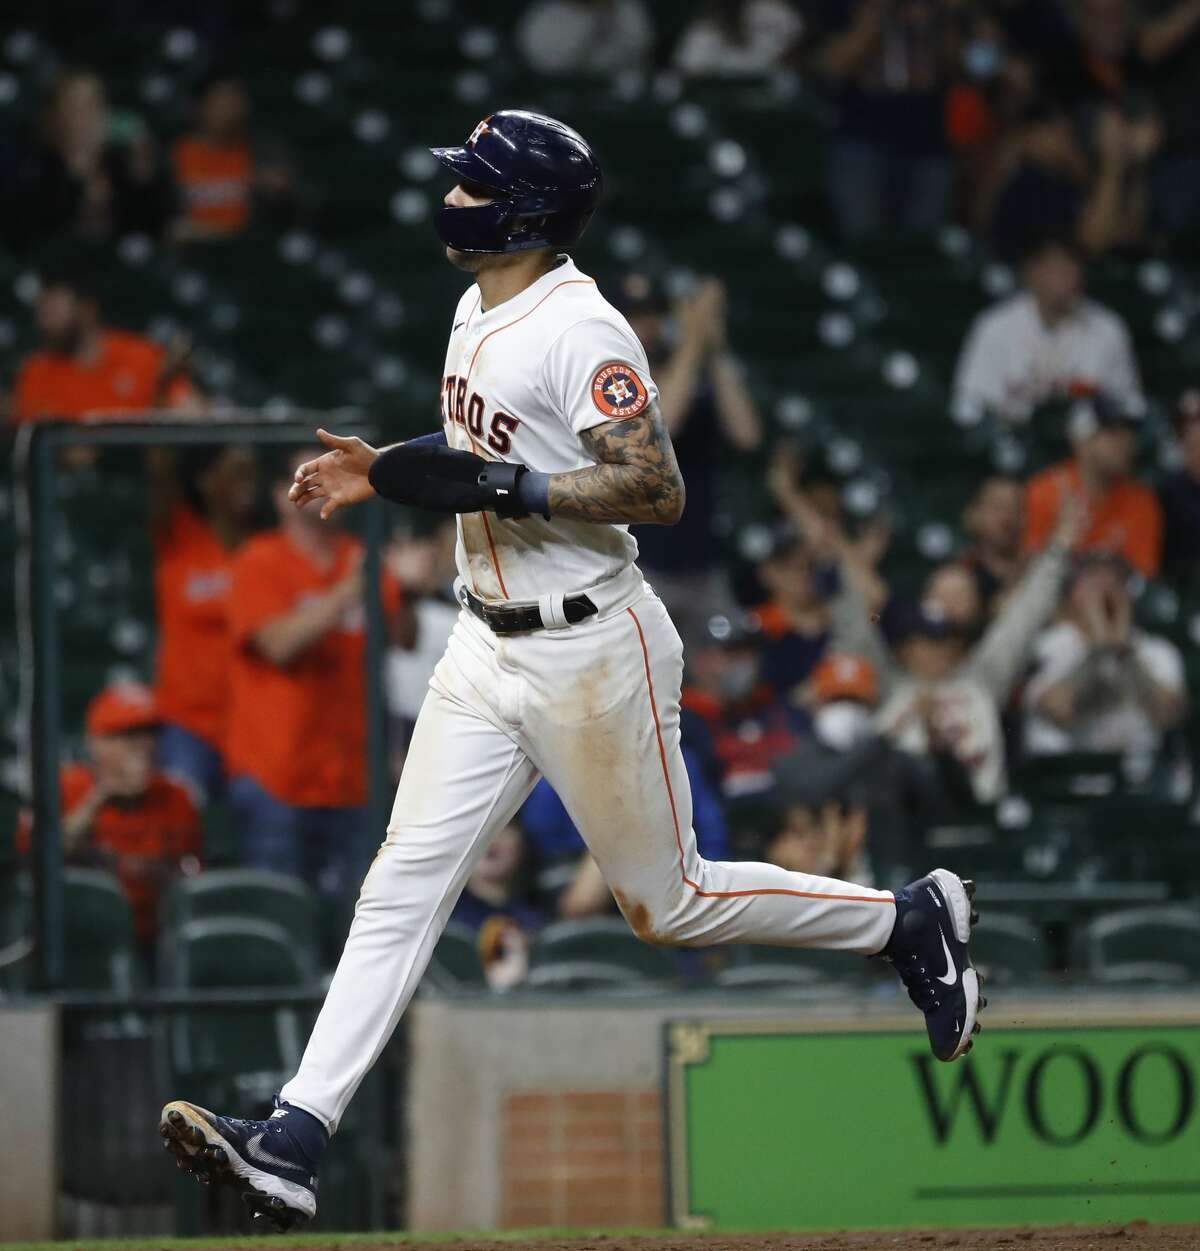 Houston Astros Carlos Correa (1) scores a run on Alex Bregman's single during the fifth inning of an MLB baseball game at Minute Maid Park, Thursday, April 22, 2021, in Houston.